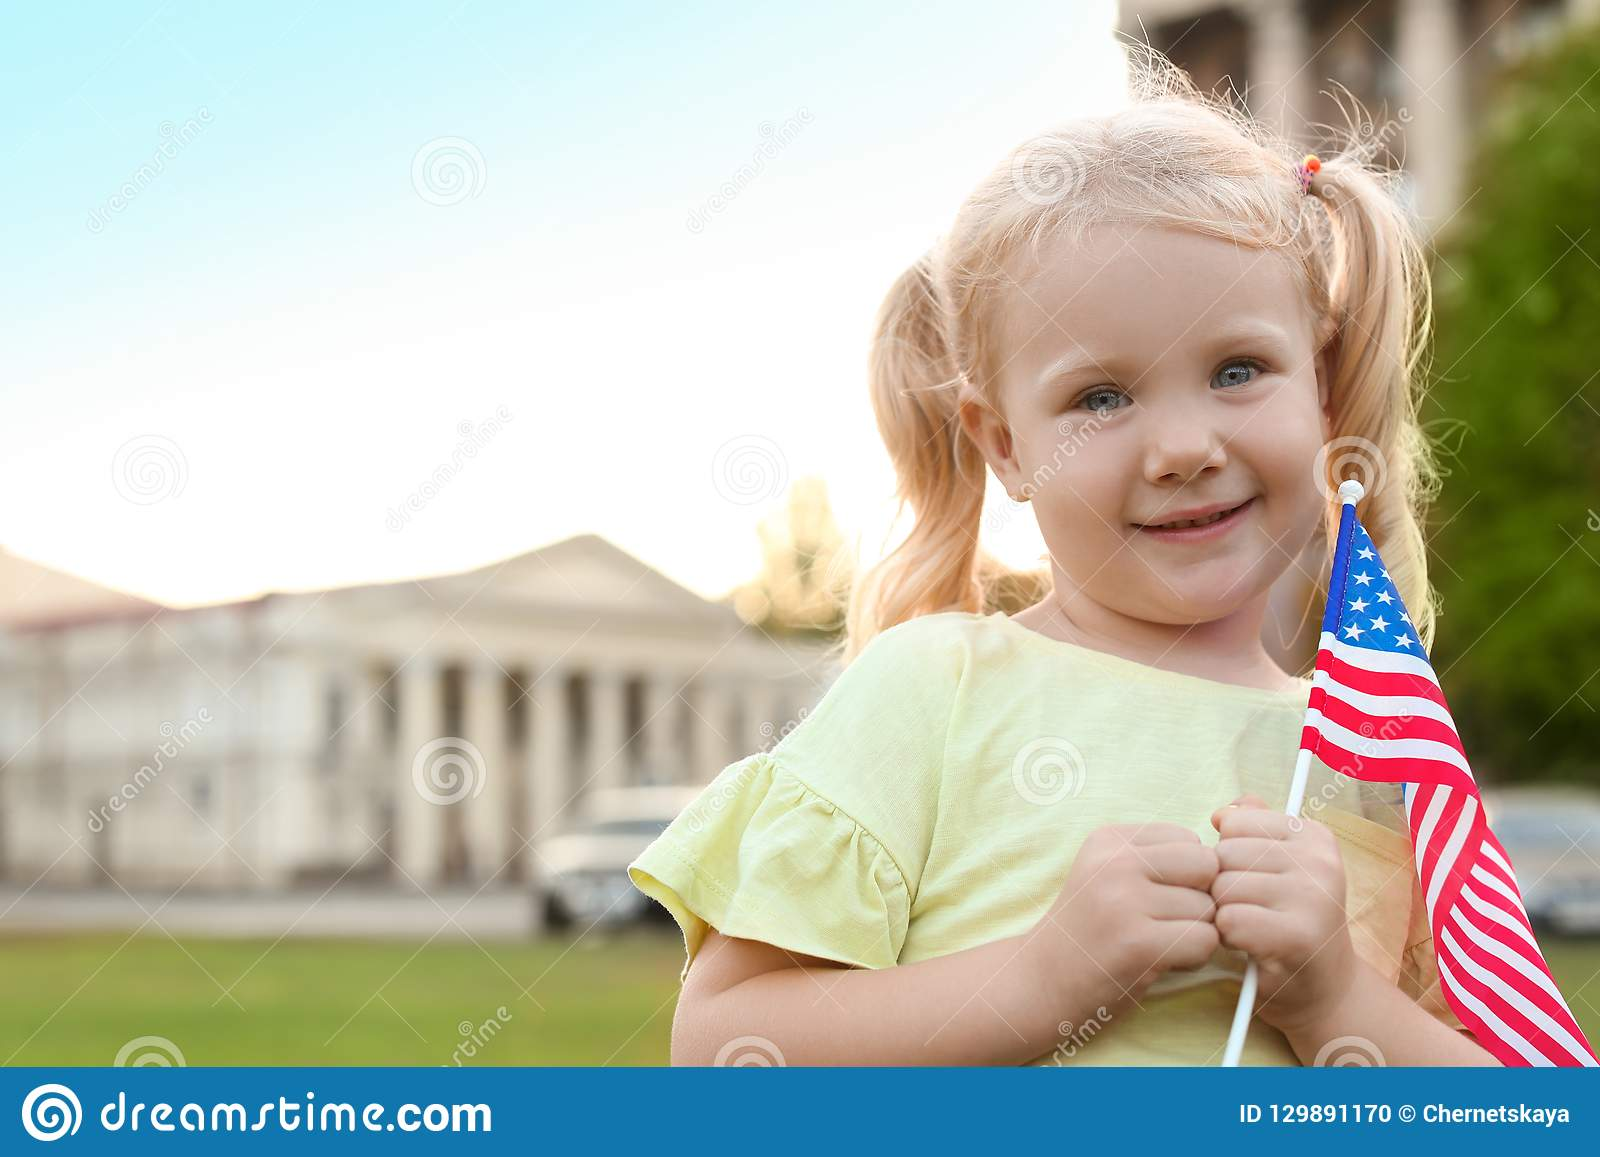 Cute little girl with American flag